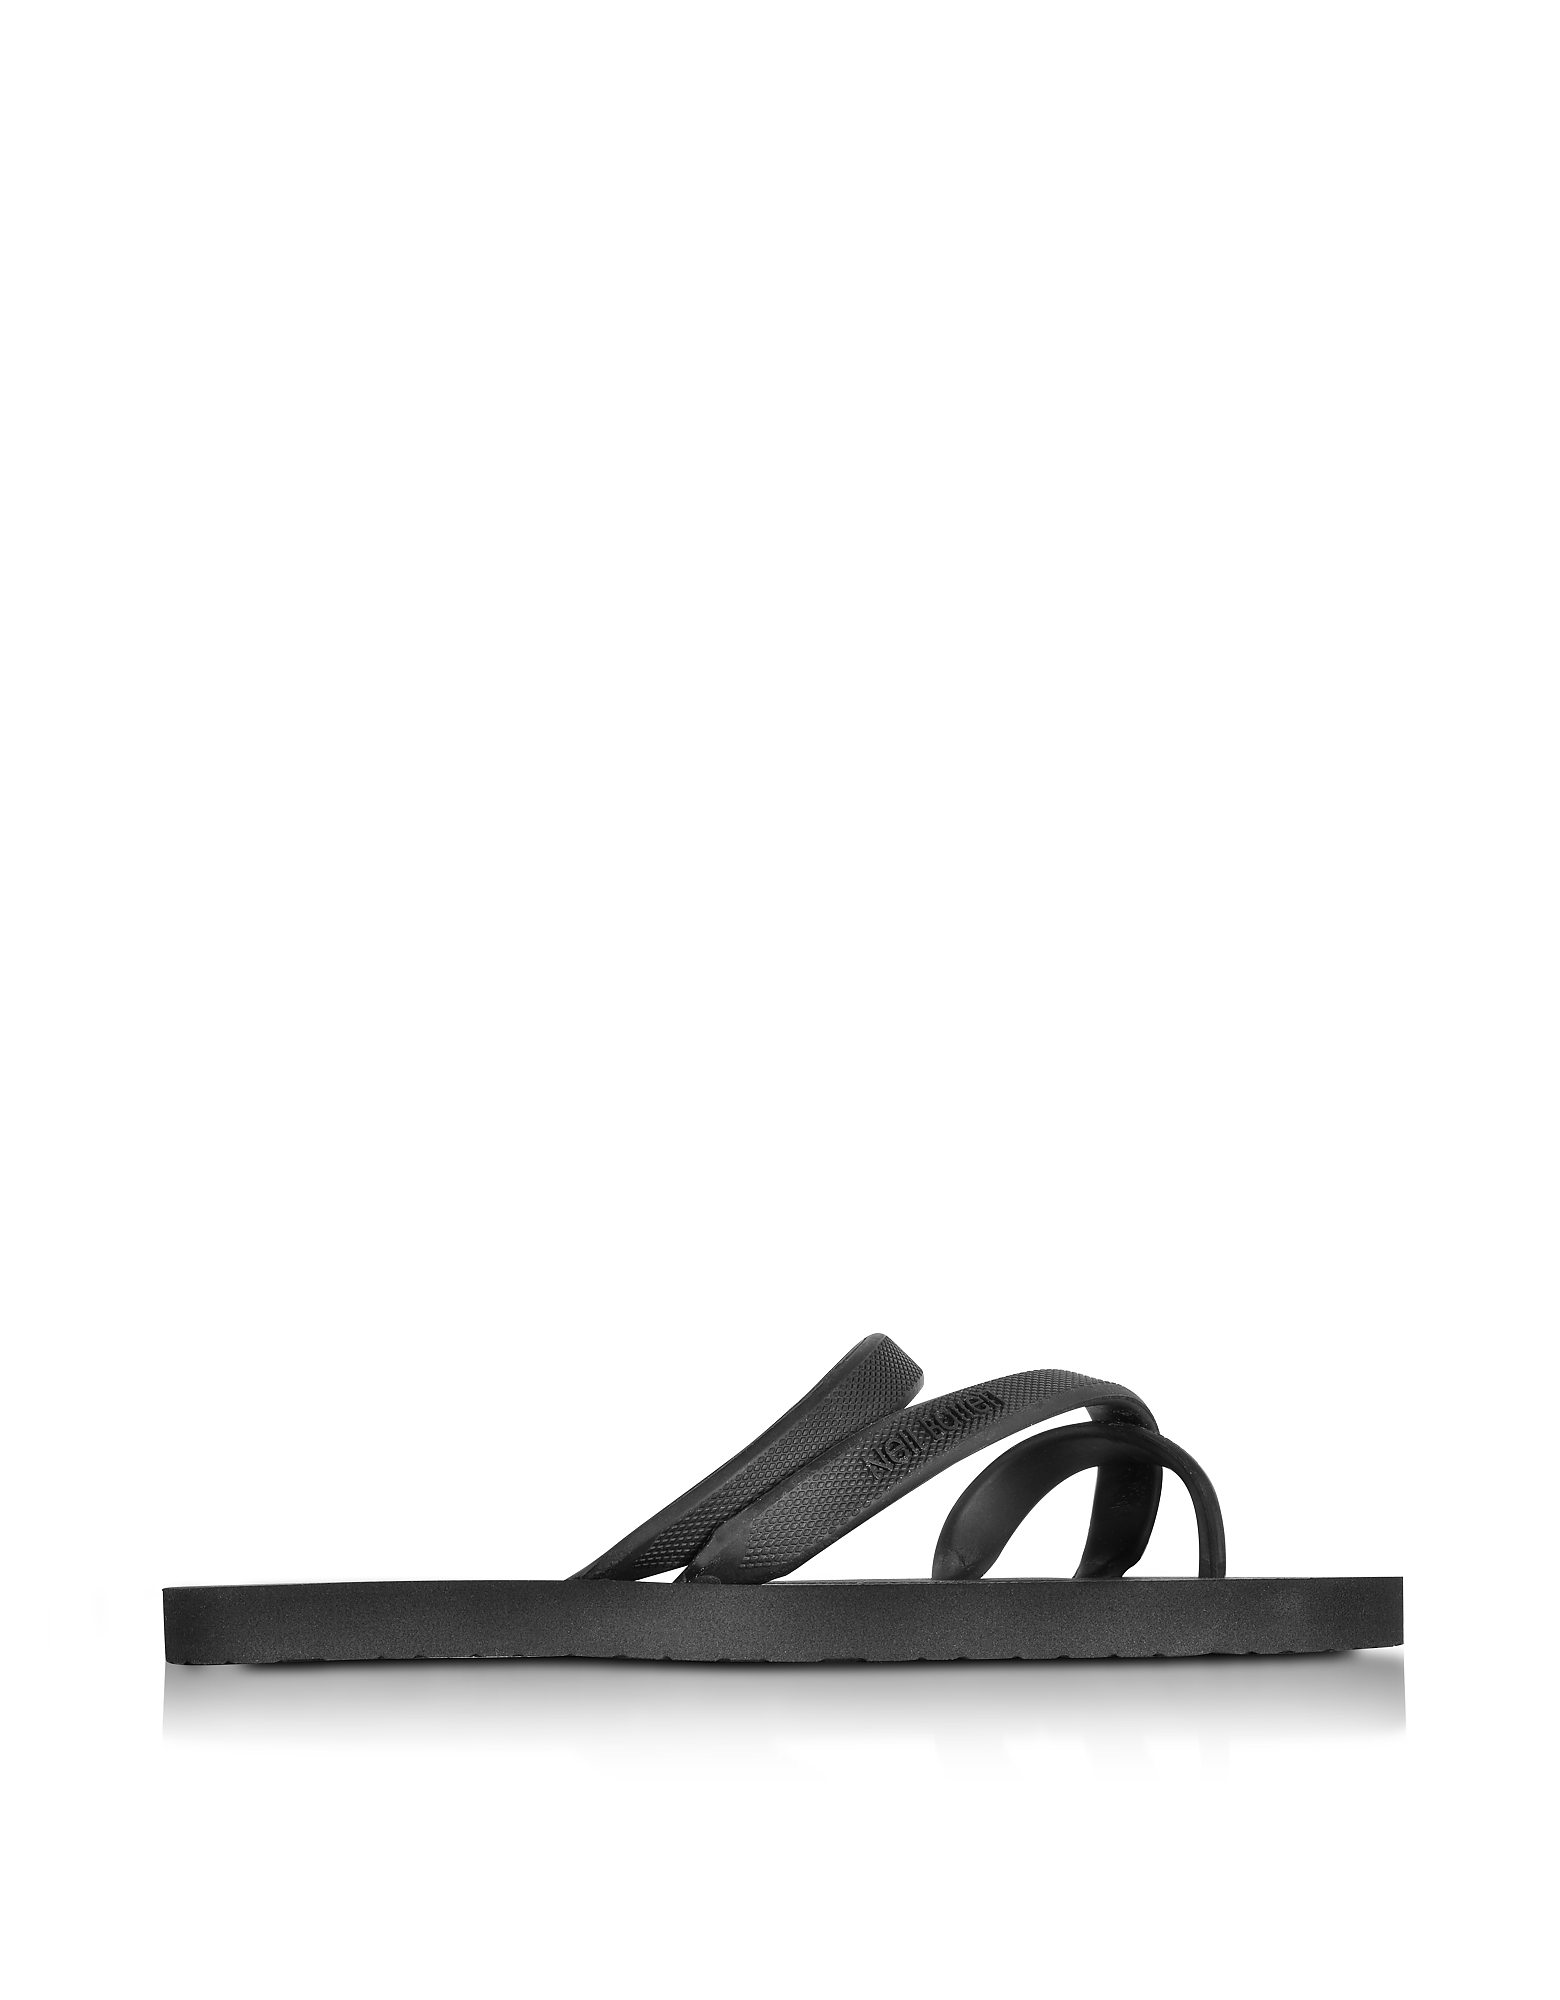 Neil Barrett Shoes, Black Rubber Thunderbolt Flip Flop